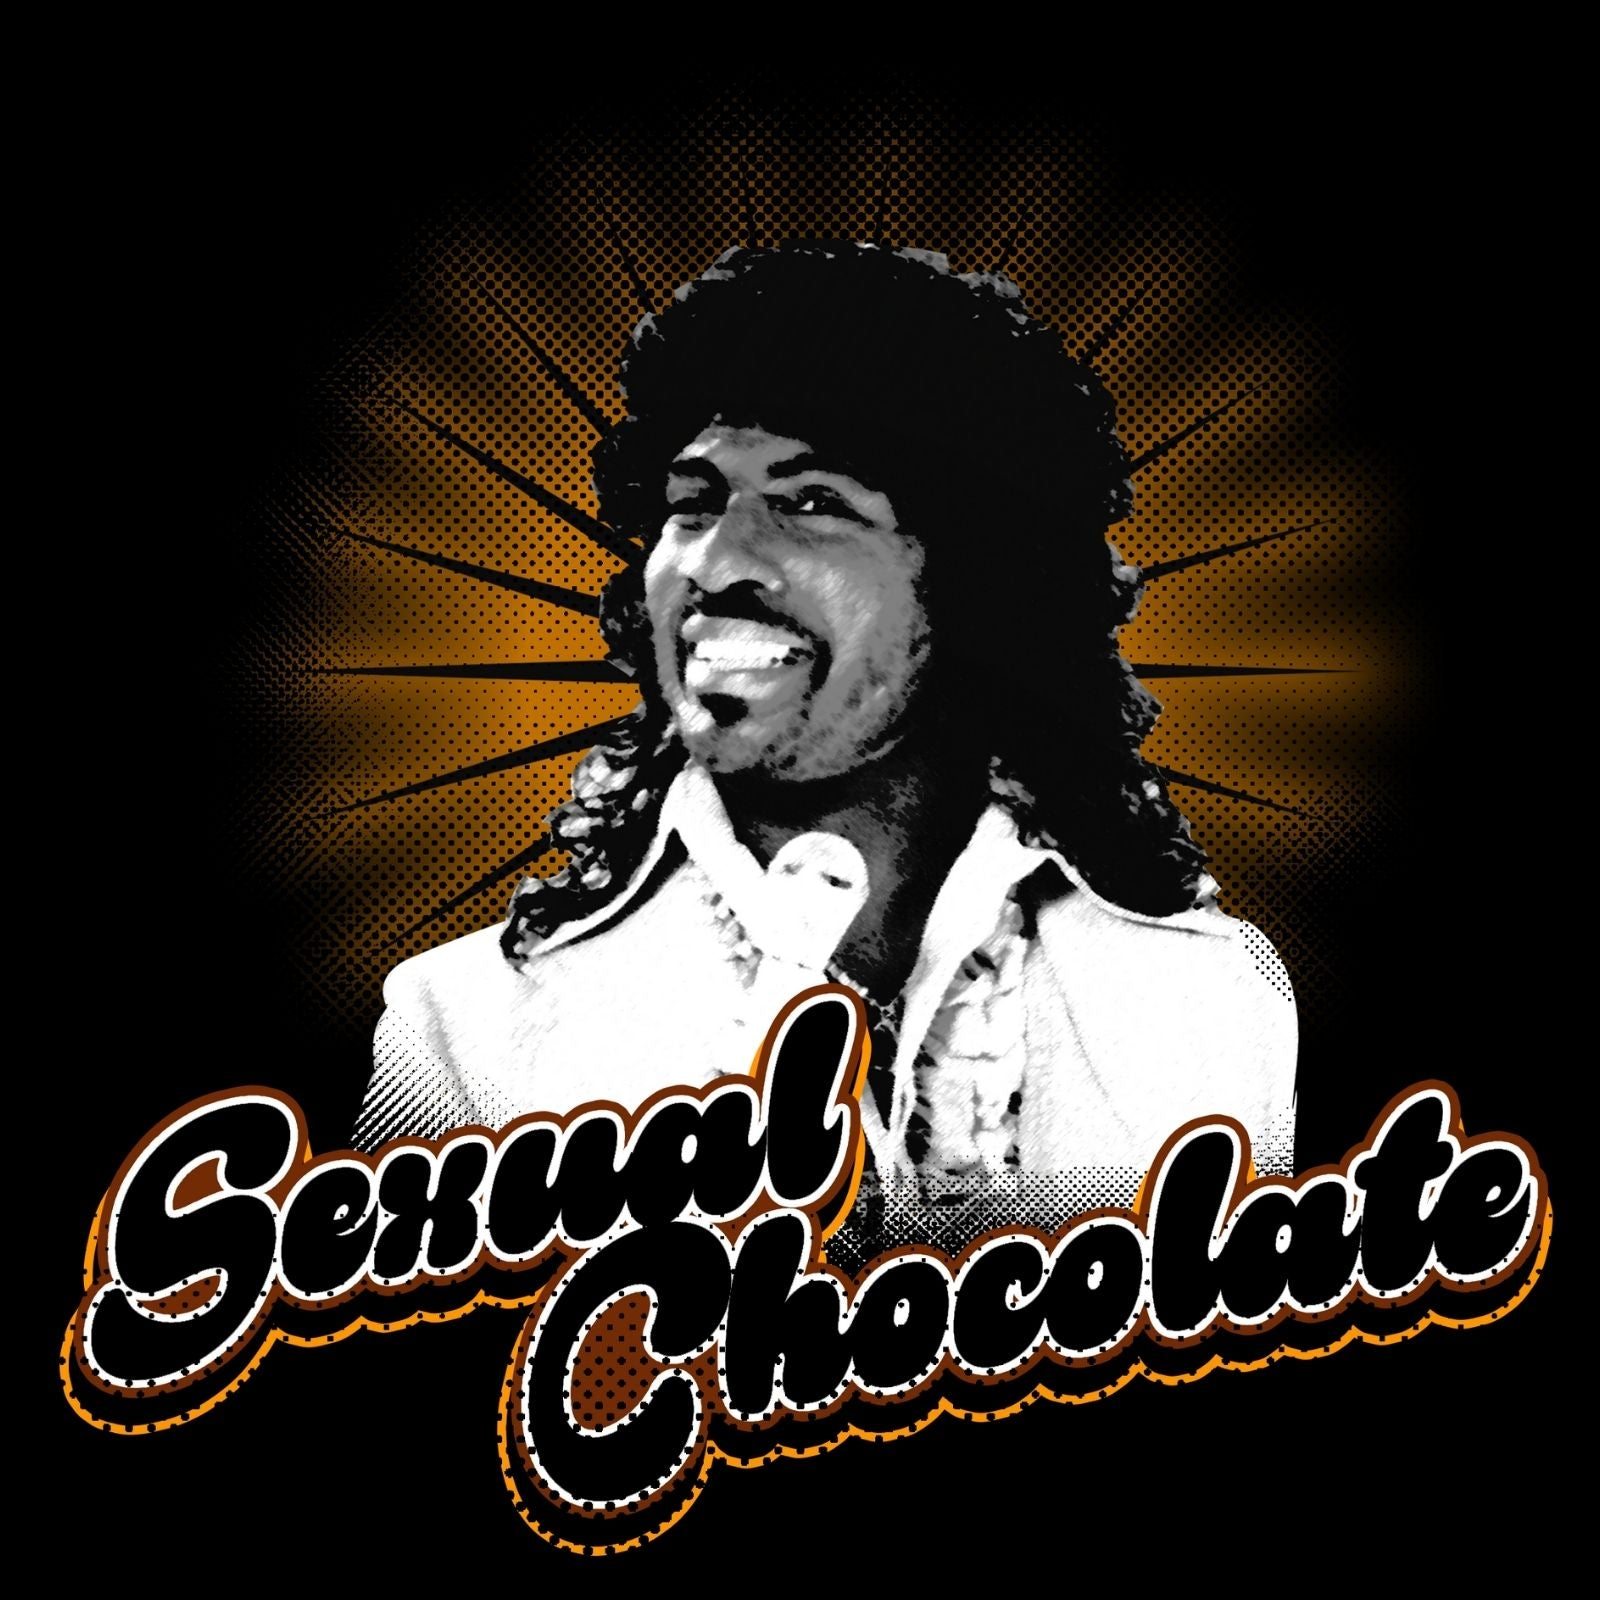 Sexual Chocolate - Bastard Graphics